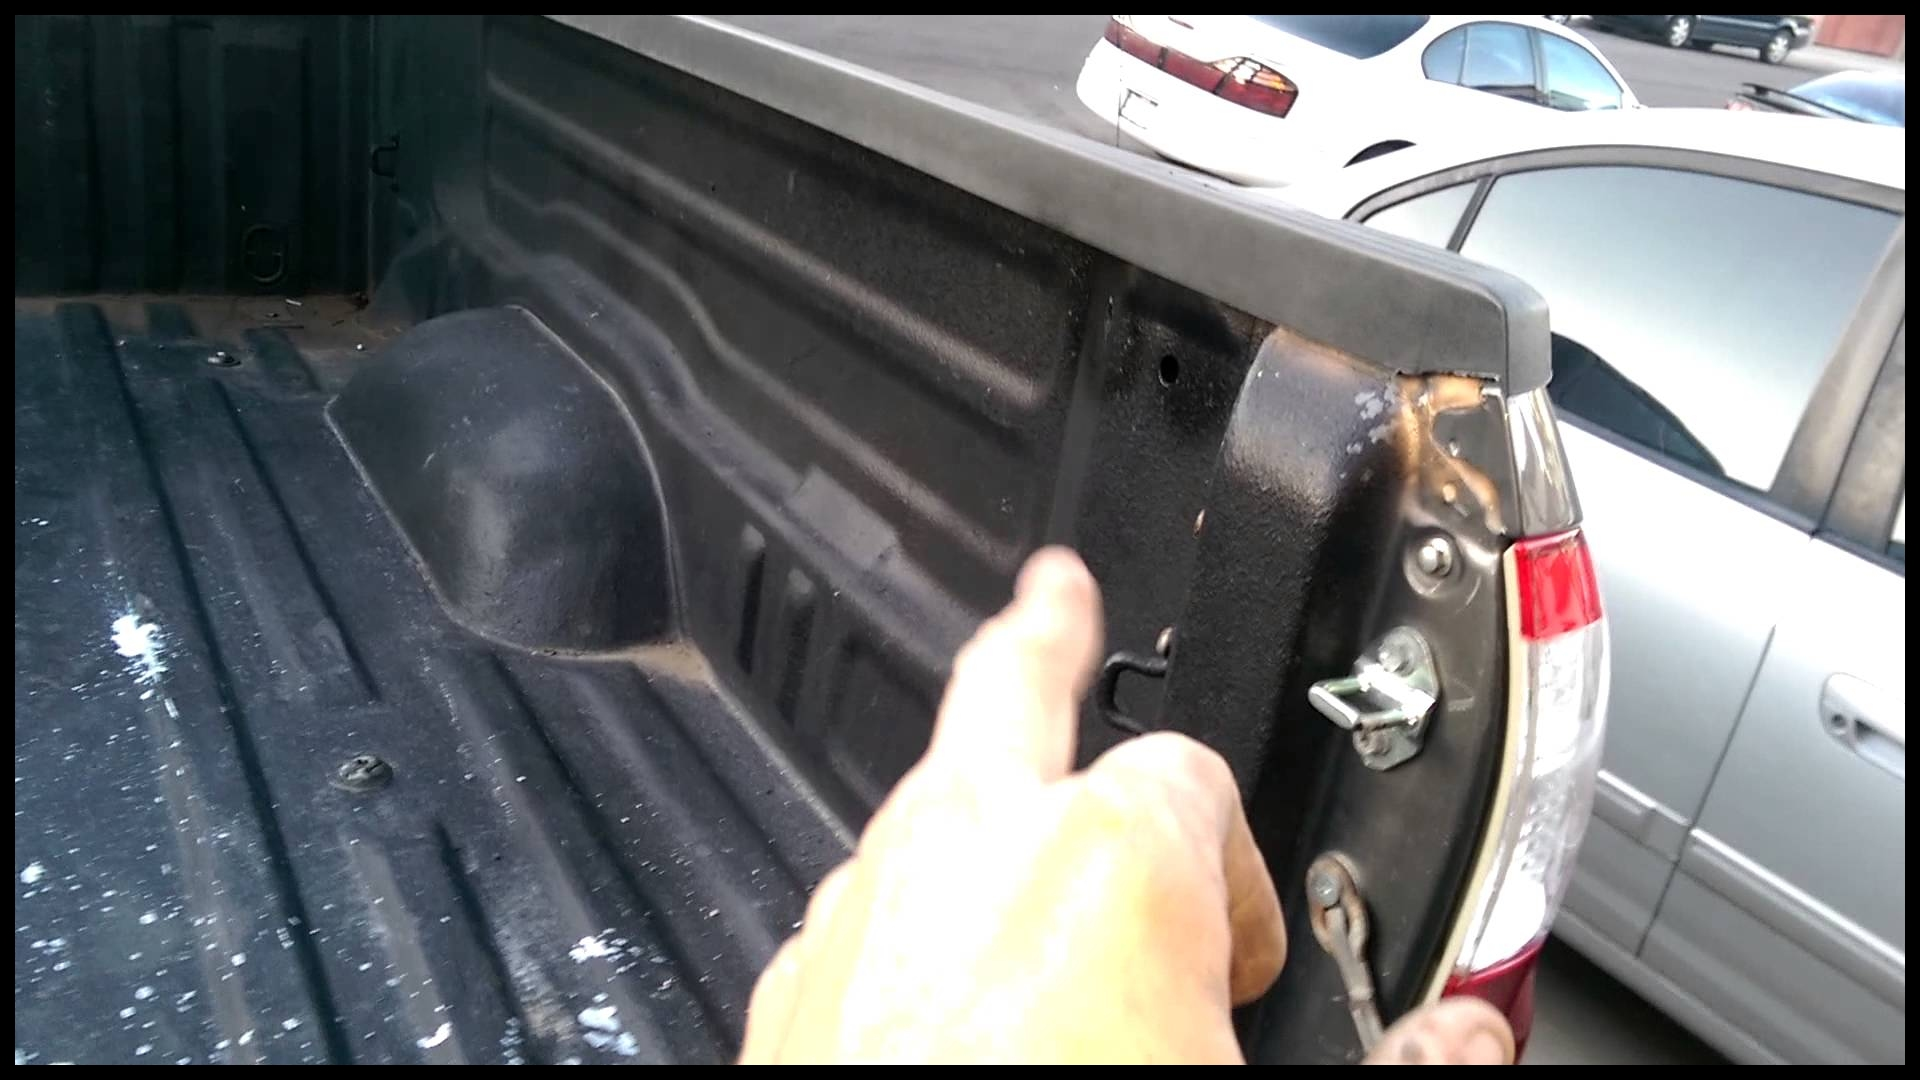 Generation 1 Toyota Tundra bed tied down system part 1